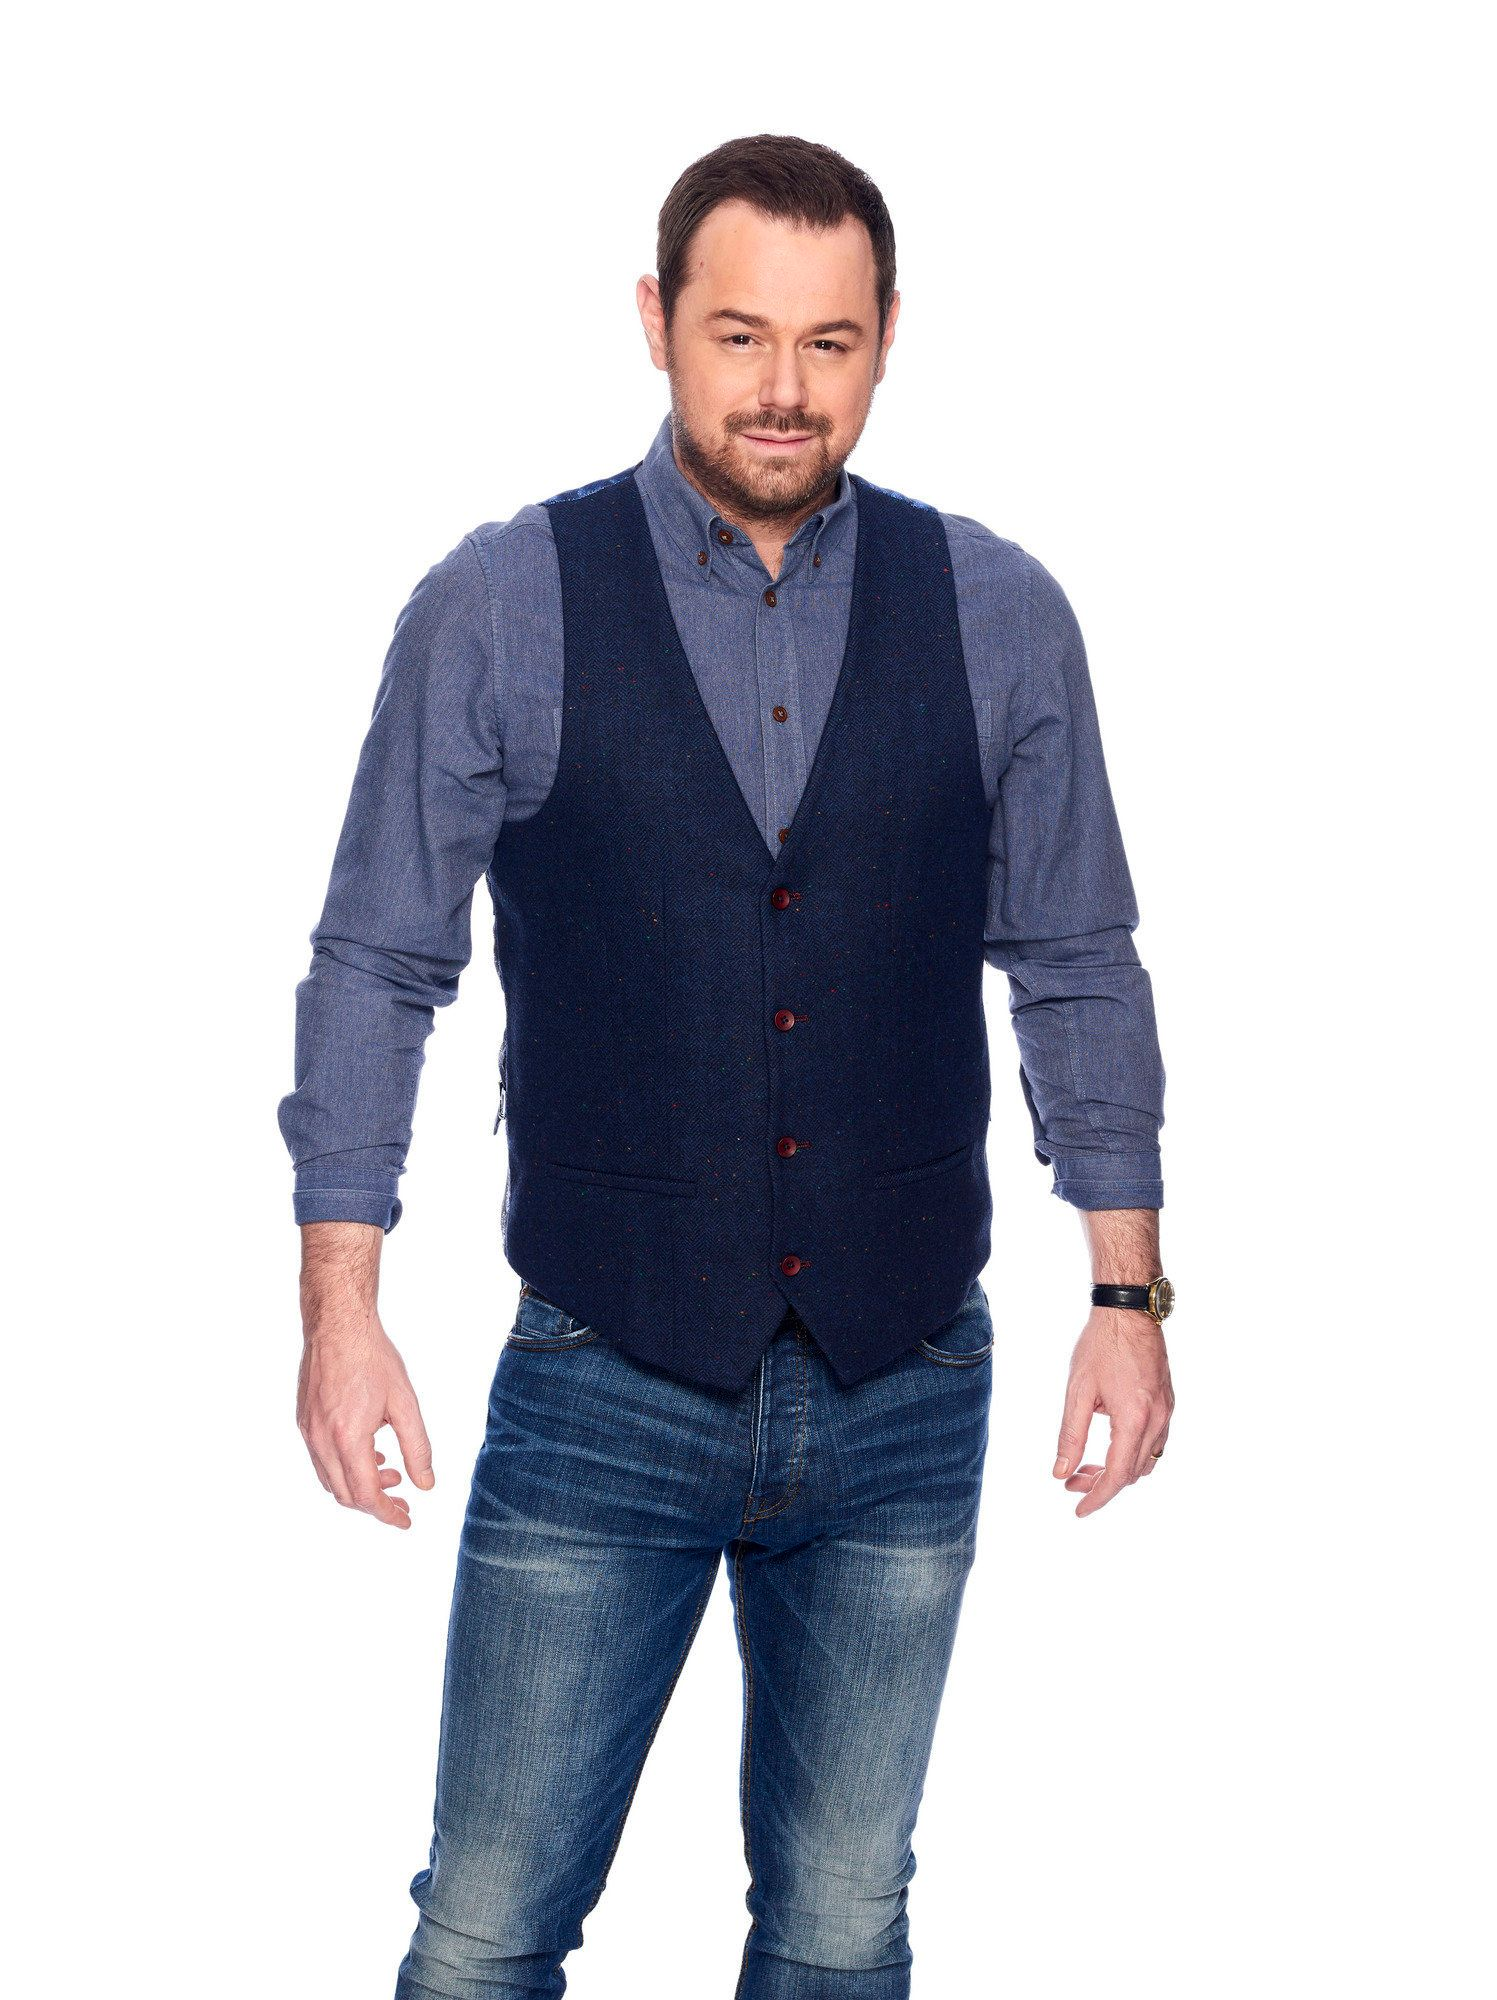 Danny Dyer Is To Present A New BBC History Series (And No, We're Not